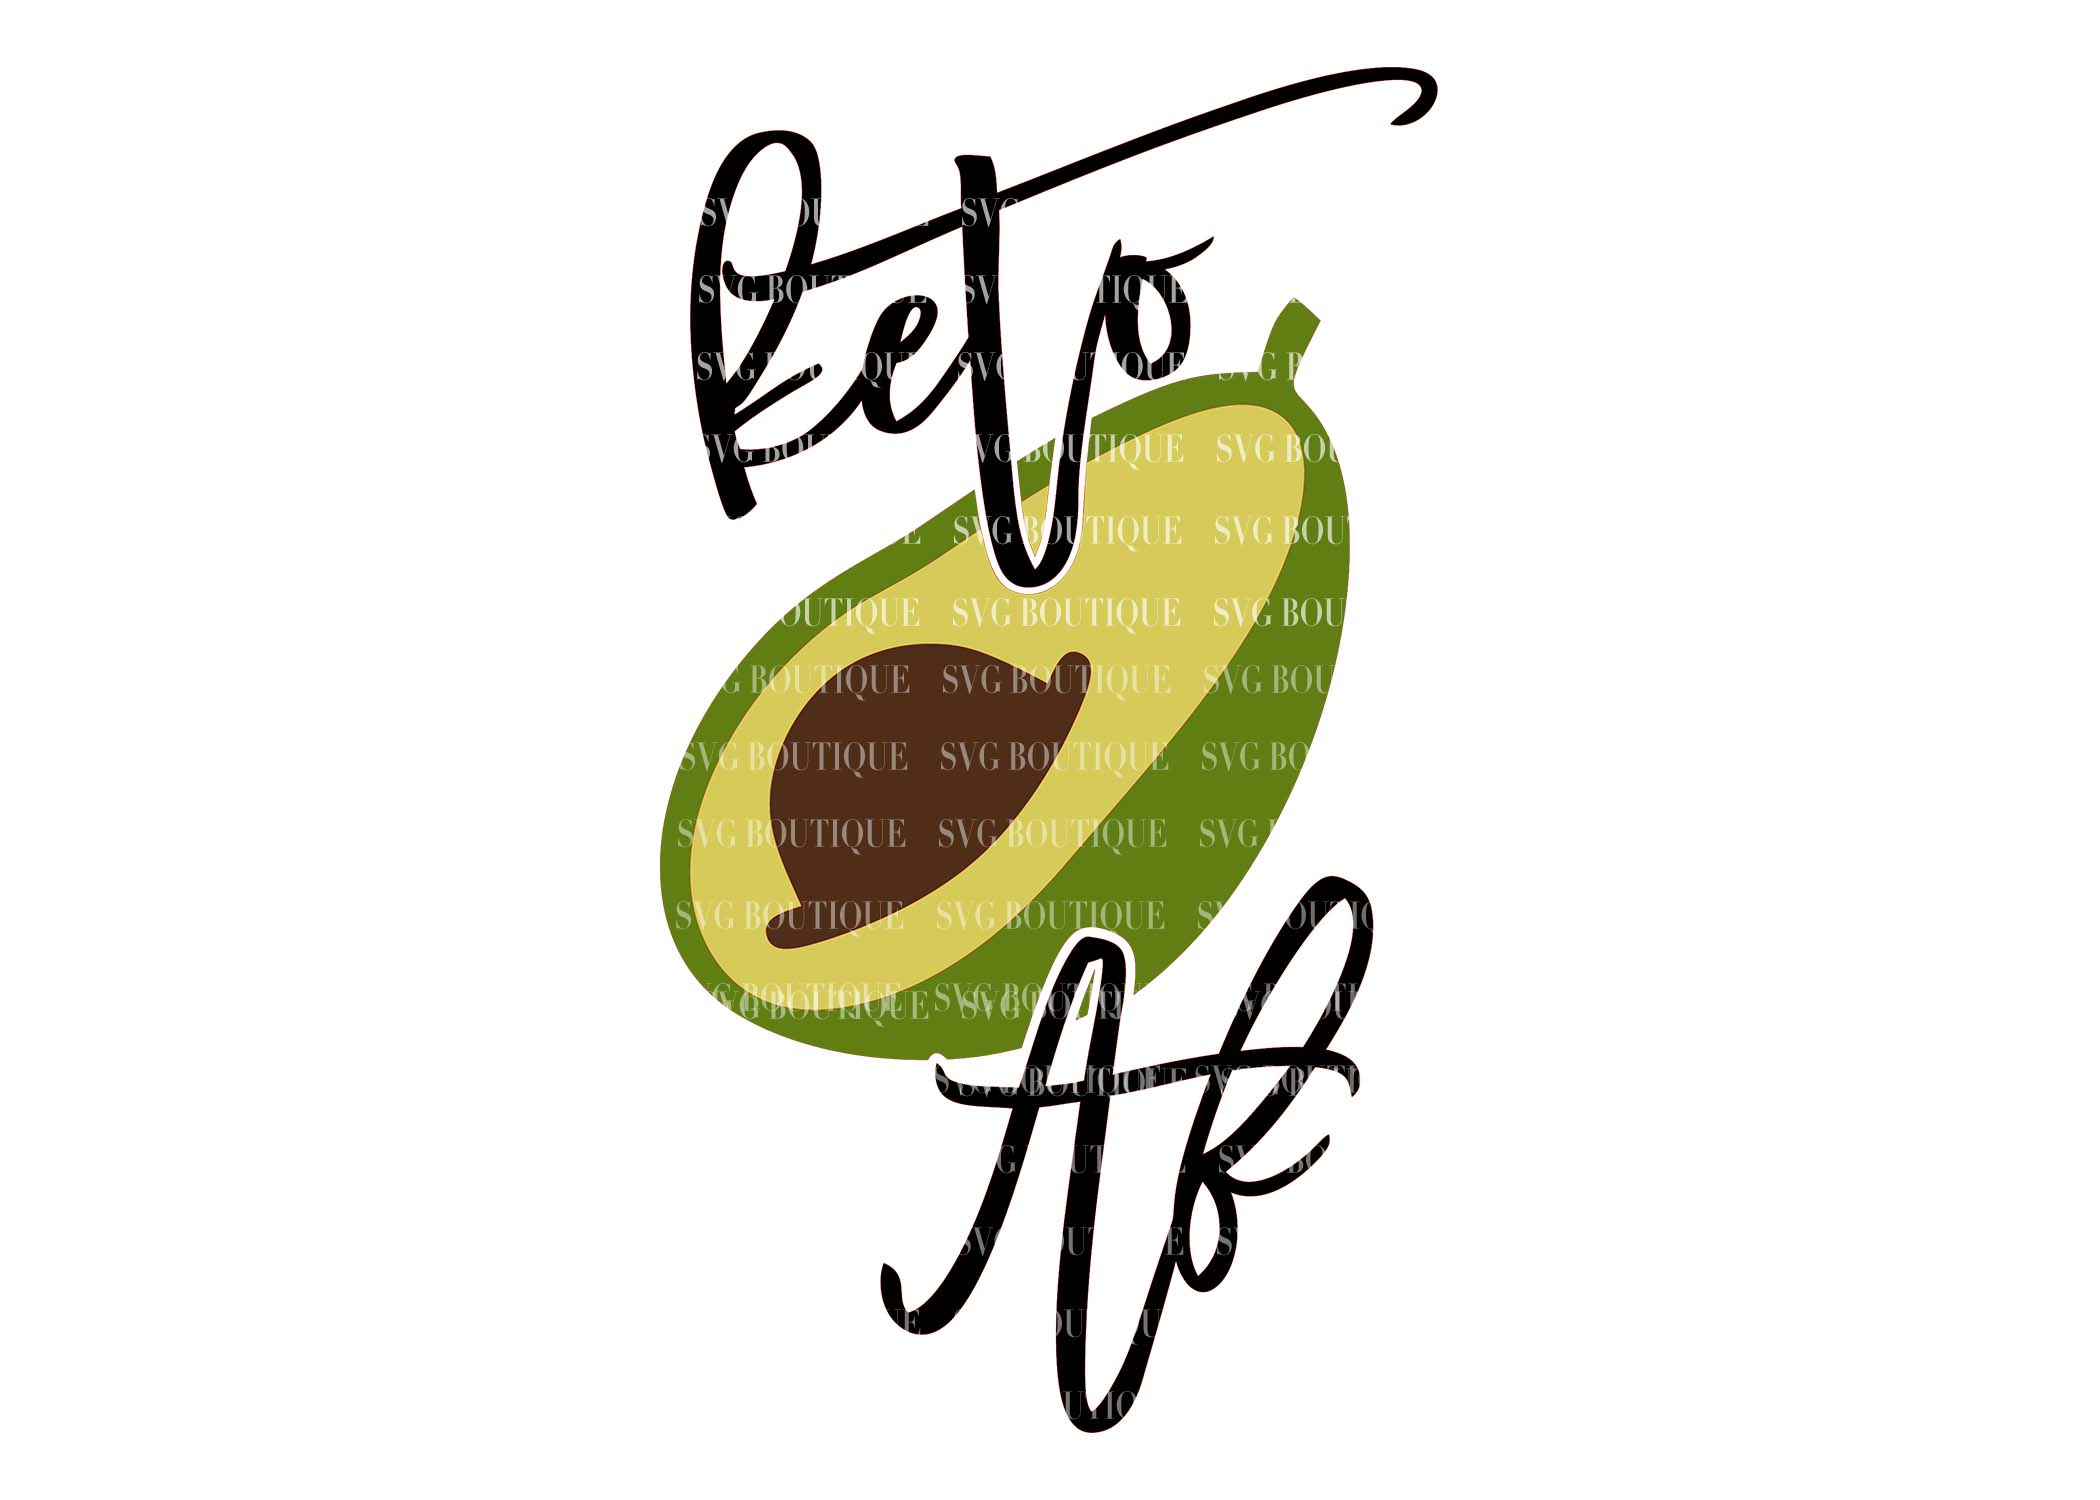 Keto SVG Bundle - Keto Diet Quotes - SVG PNG DFX example image 7